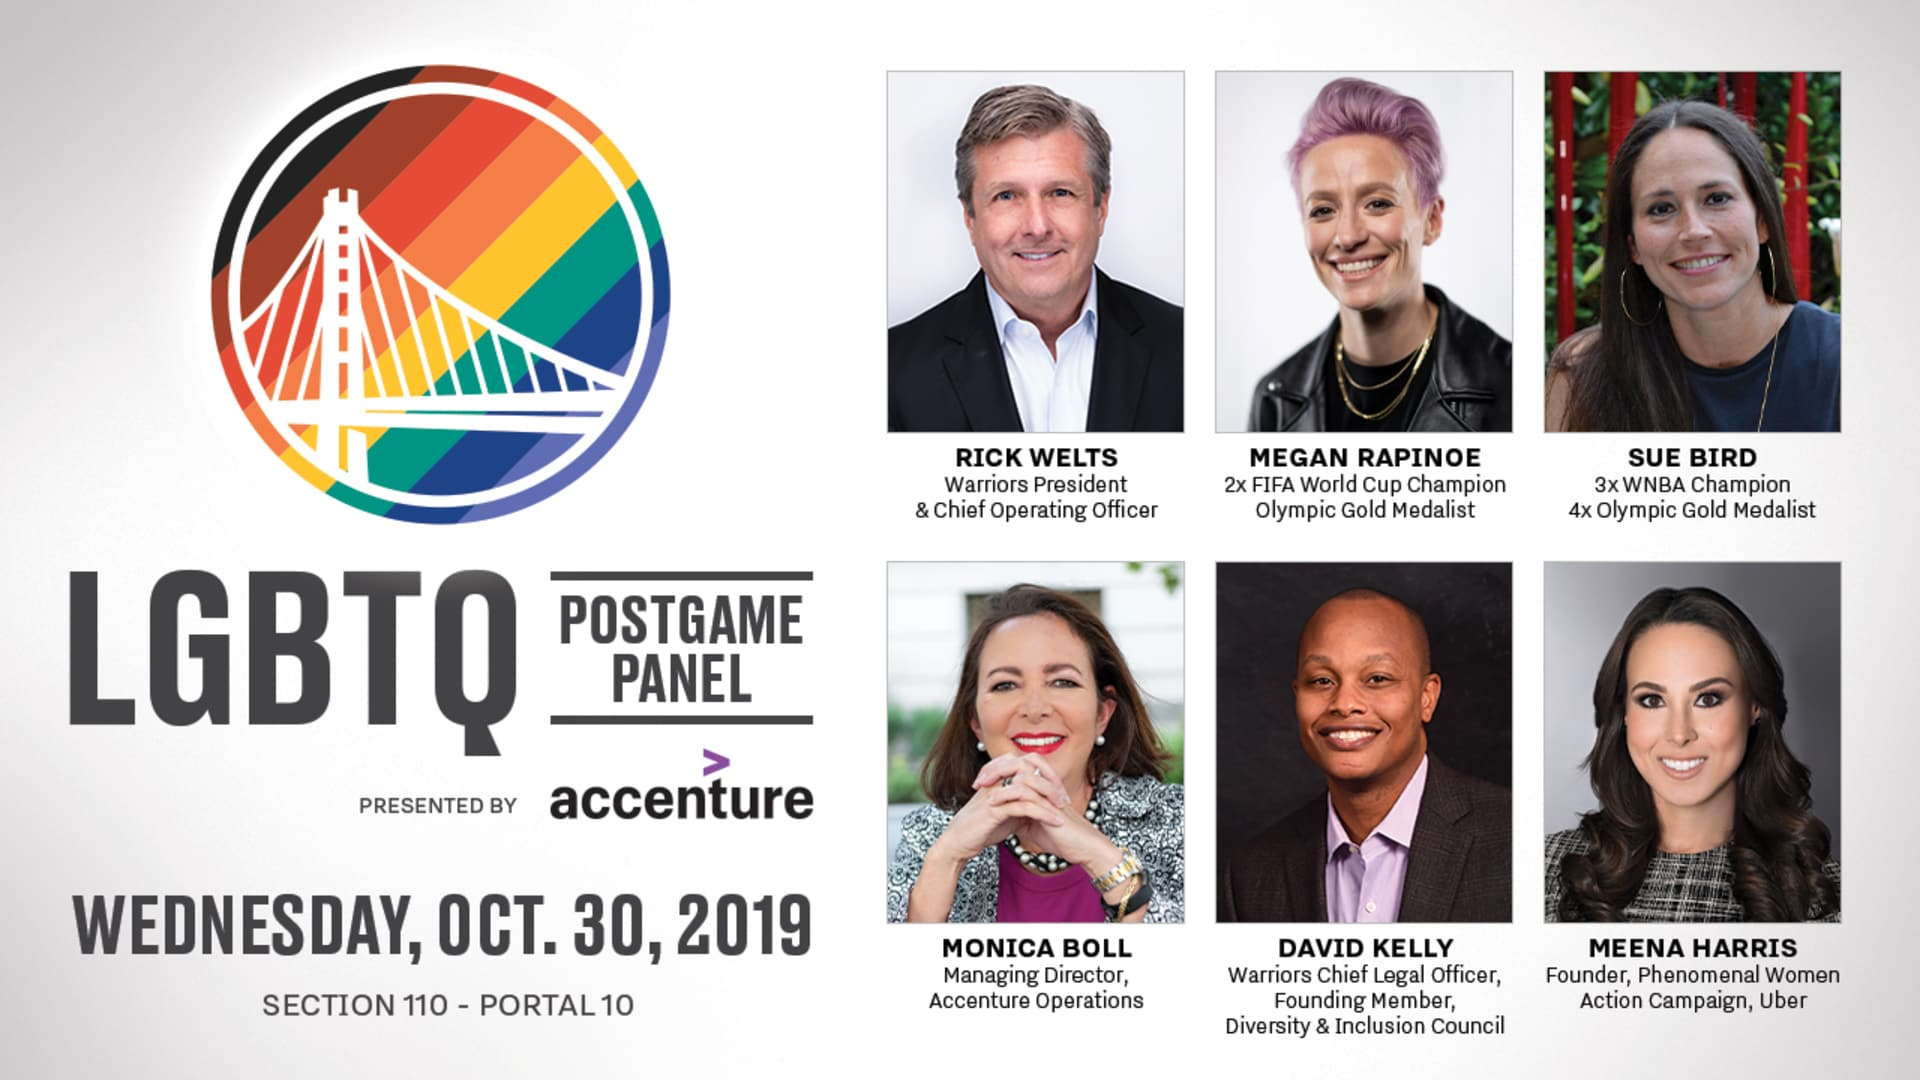 LGBTQ Night Postgame Panel, Presented by Accenture